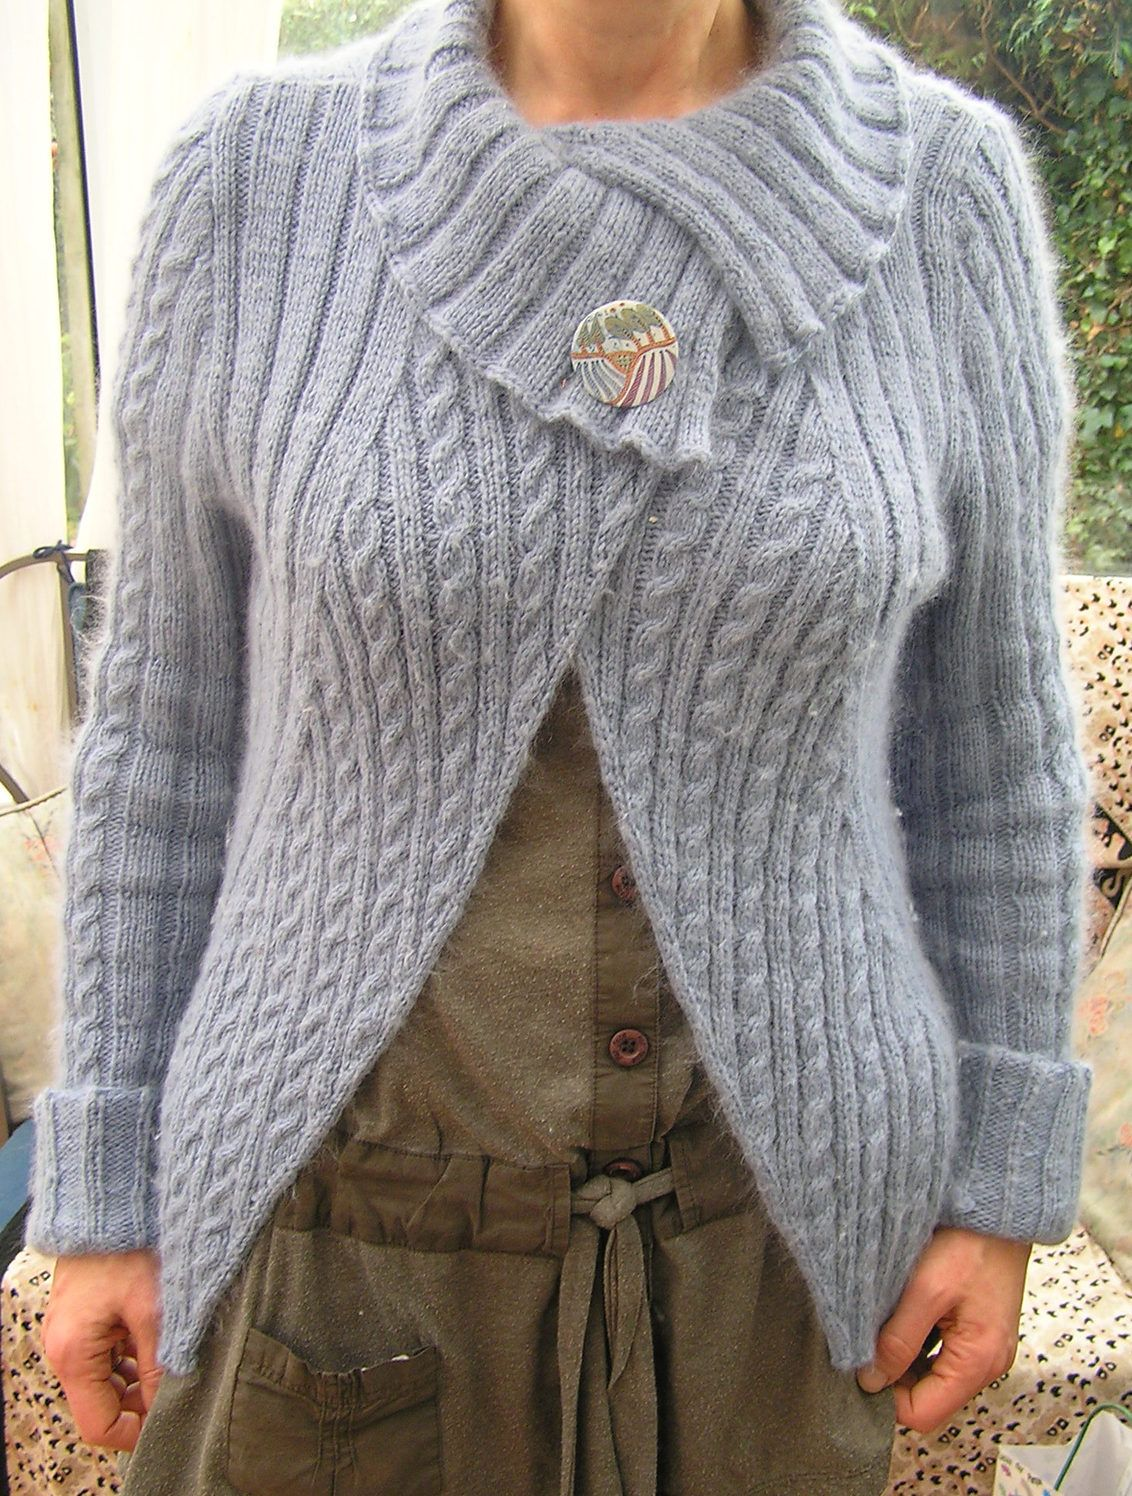 Wrap Cardigan Knitting Patterns | Body shapes, Knitting patterns and ...